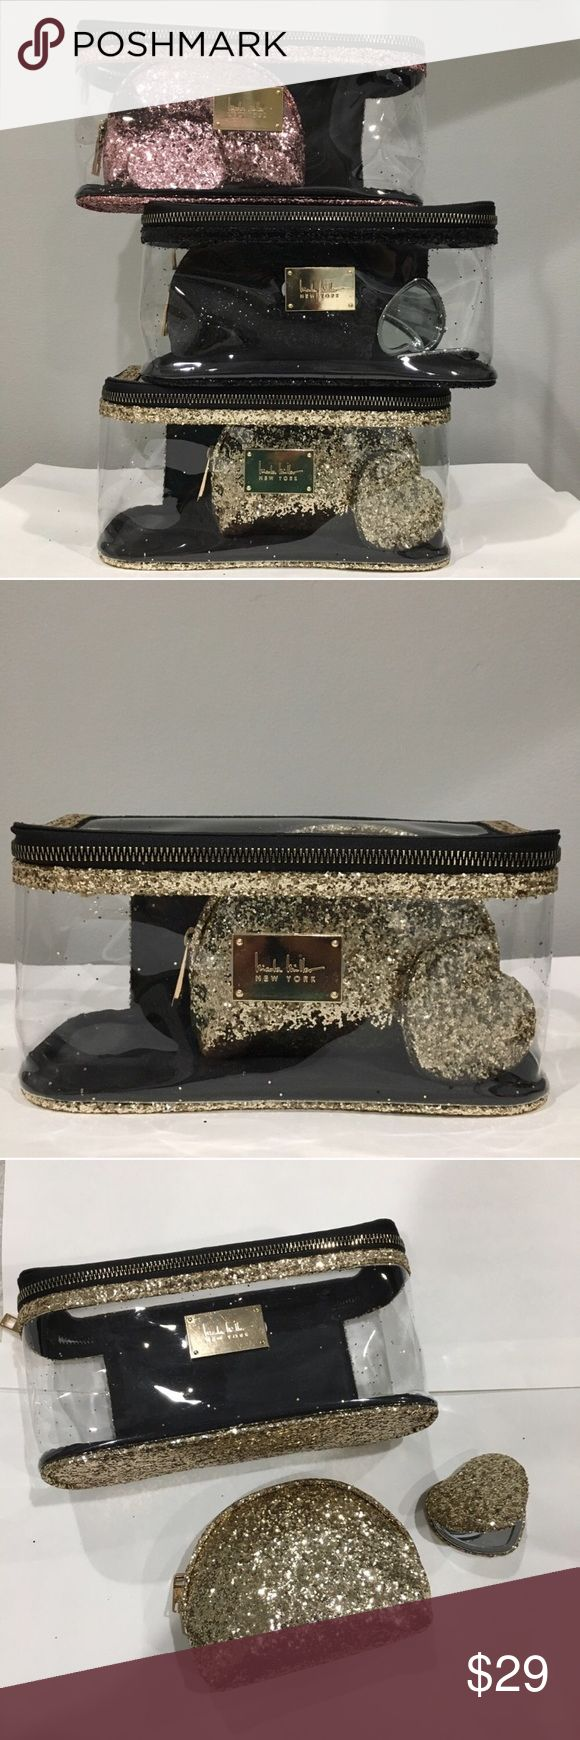 """NICOLE MILLER GOLD GLITTER 3 Pc set cosmetic bag PRICE FIRM Nicole Miller GOLD Glitter 3 Pc Clear Cosmetic Make Up Cases Bags with Heart Mirror Super cute sparkly 3 piece glitter cosmetic case gift set. Each set comes w large clear case that measures approximately 9"""" x 4""""x 4 1/4"""", a smaller glitter case and a small glitter covered heart shaped mirror. This set is a great gift for teachers, friends, or birthday presents. *Please note some glitter may come loose and add some sparkle where it…"""